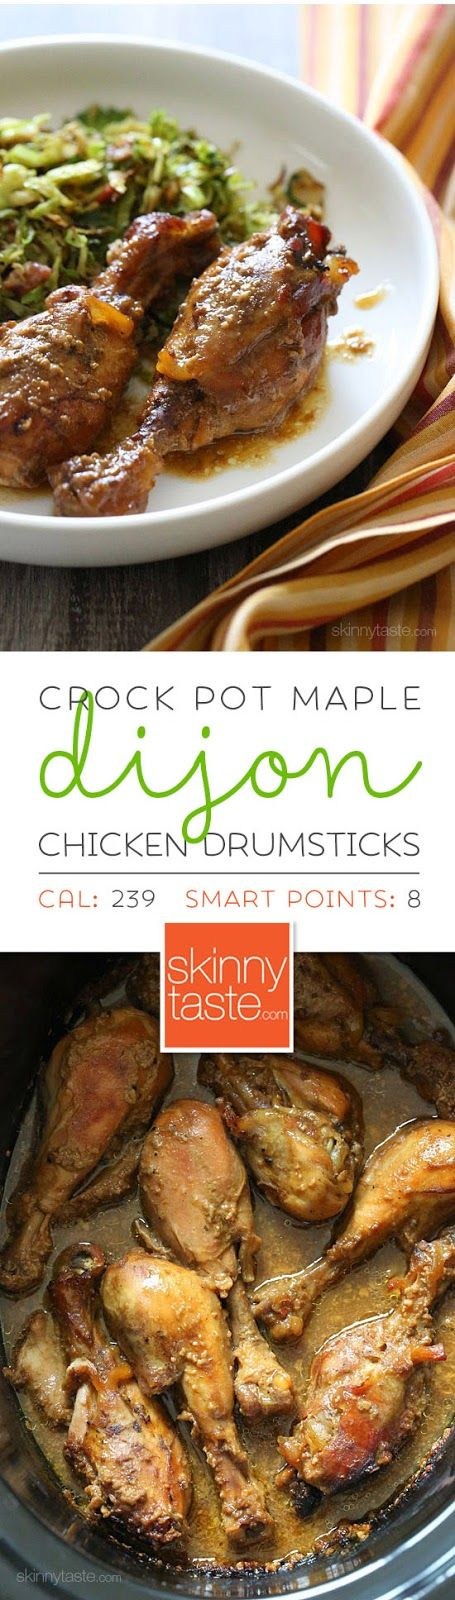 FOR FODMAP, SUB GARLIC SALT WITH SEA SALT AND SPICES OF YOUR CHOICE (THYME, ROSEMARY, CHILE POWDER, CUMIN) Crock Pot Maple Dijon Chicken Drumsticks – An EASY 6-ingredient chicken dish the whole family will LOVE!